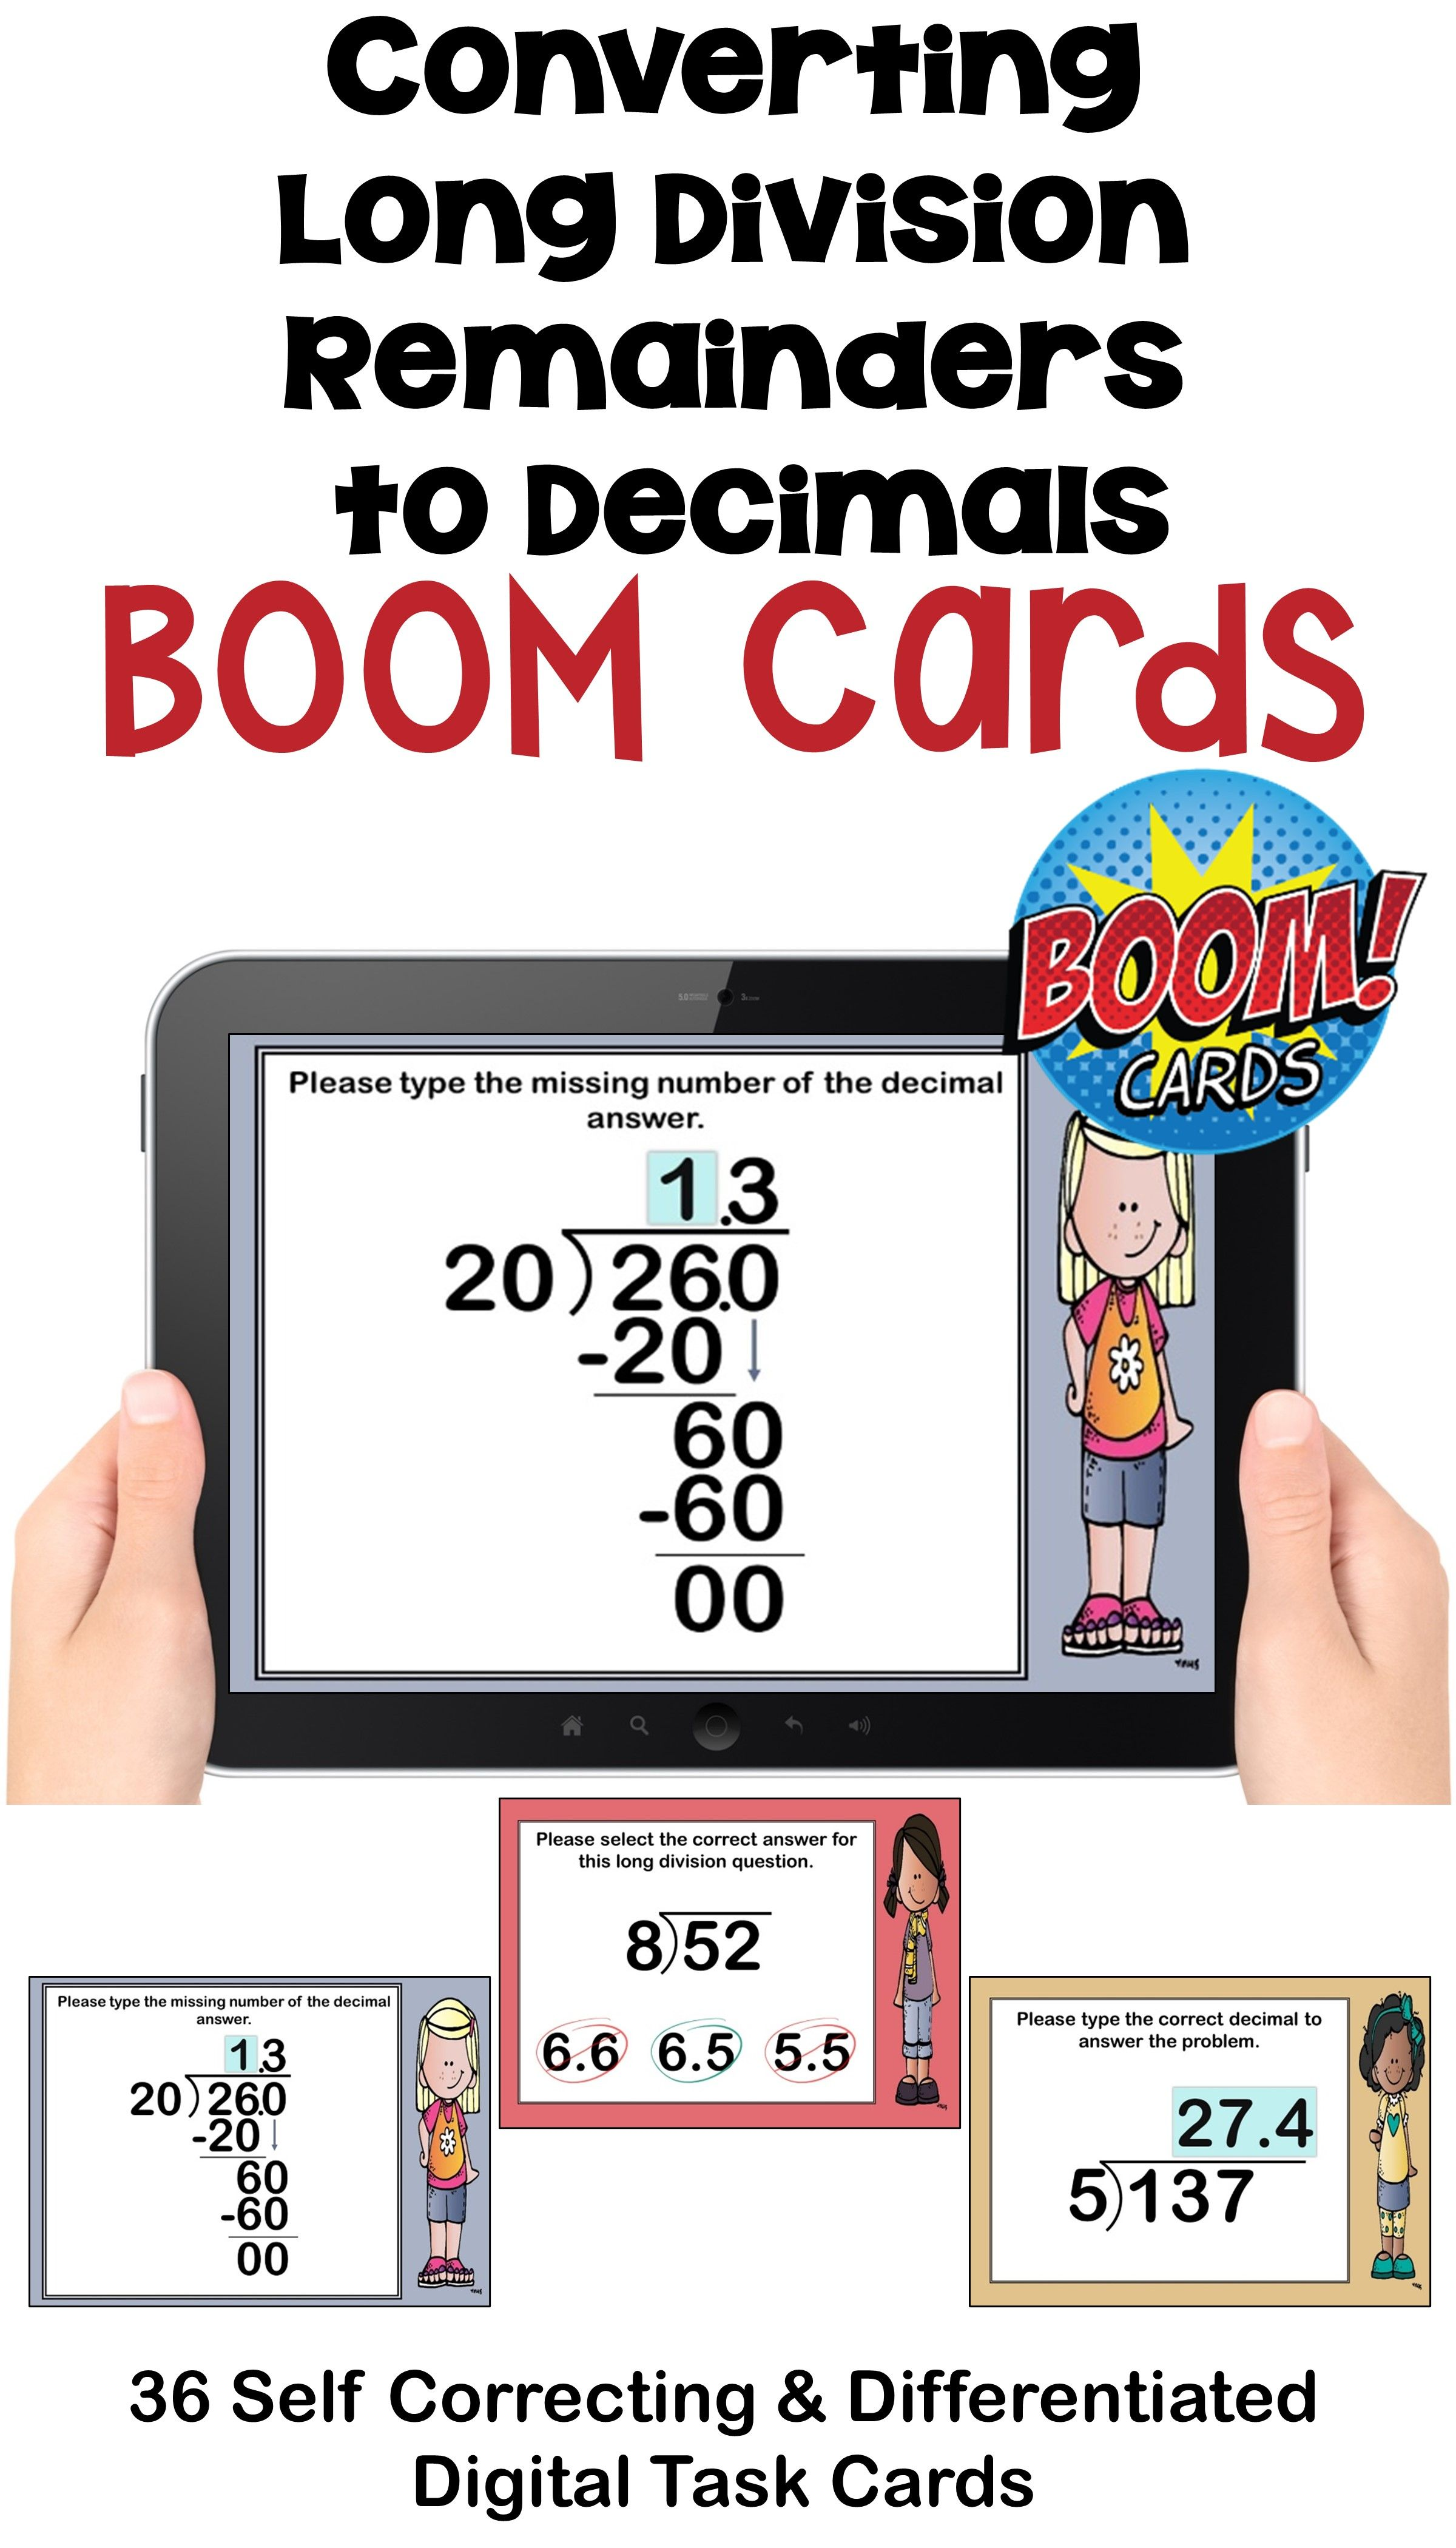 Converting Long Division Remainders To Decimals Boom Cards